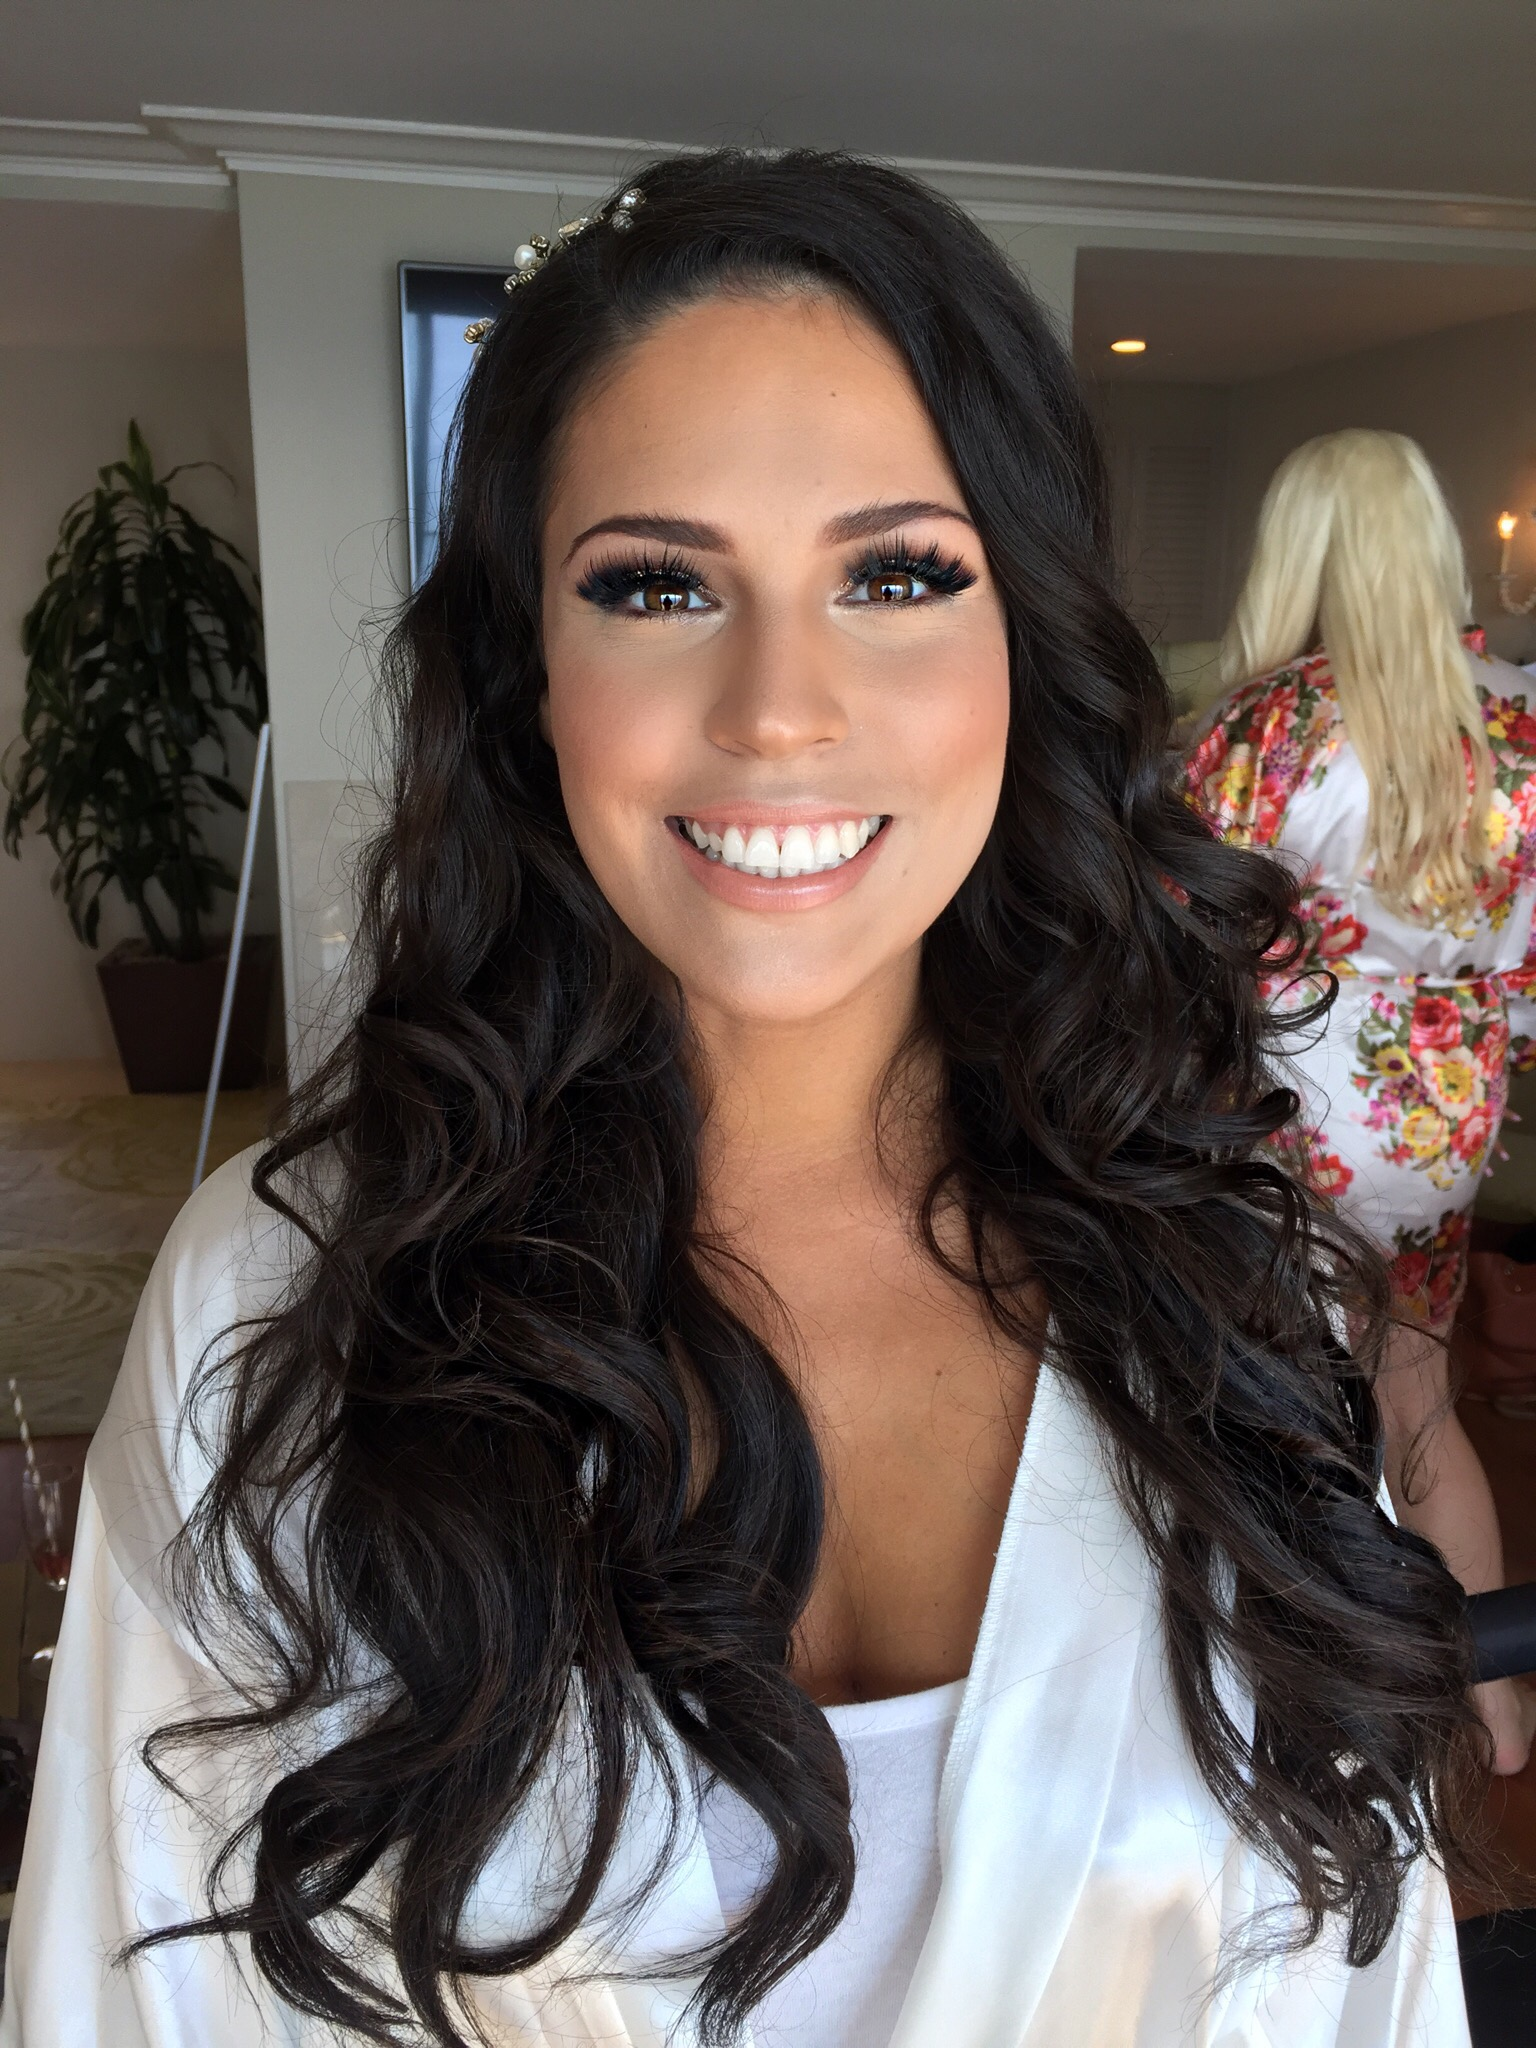 Brunette bridal makeup with sparkly smokey eye and long curled hair down with accessory at Surf & Sand beach wedding in Laguna Beach. Wedding day Hair and Makeup by Vanity Belle in Orange County (Costa Mesa) and San Diego (La Jolla)